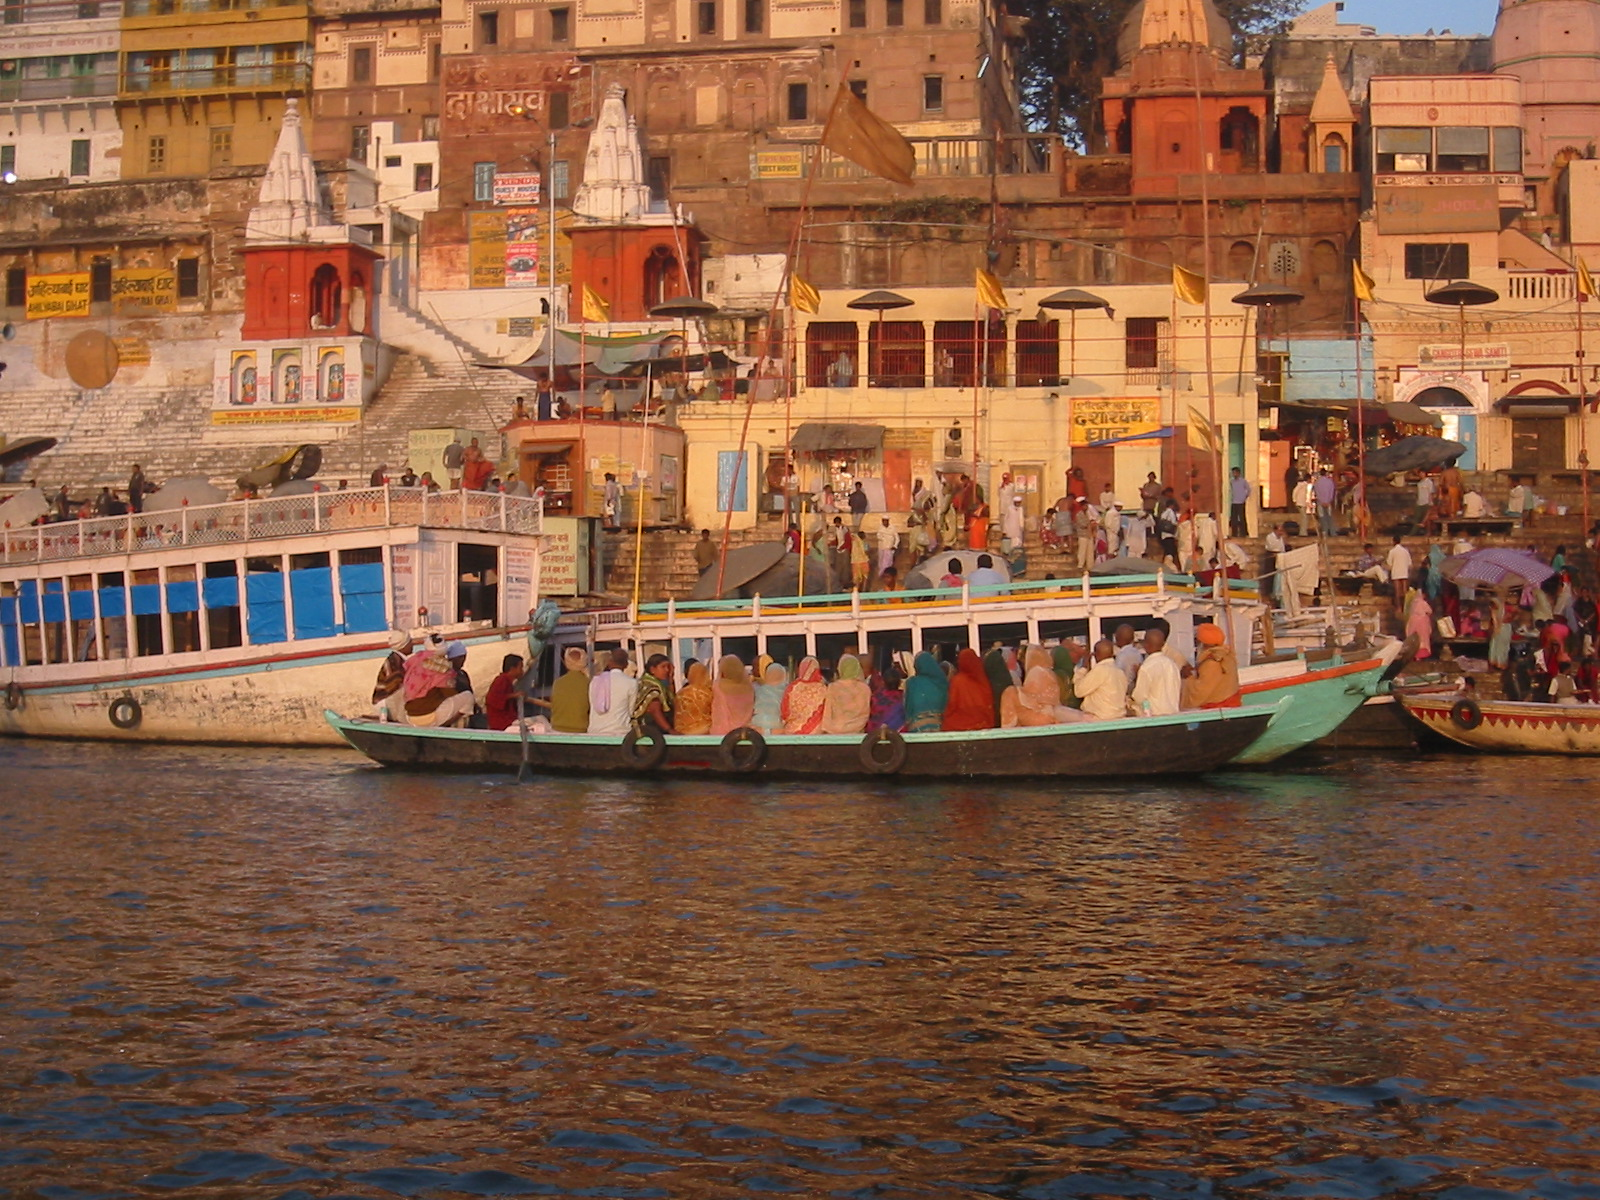 Dashashwamedha_ghat_on_the_Ganga,_Varanasi.jpg (1600×1200)